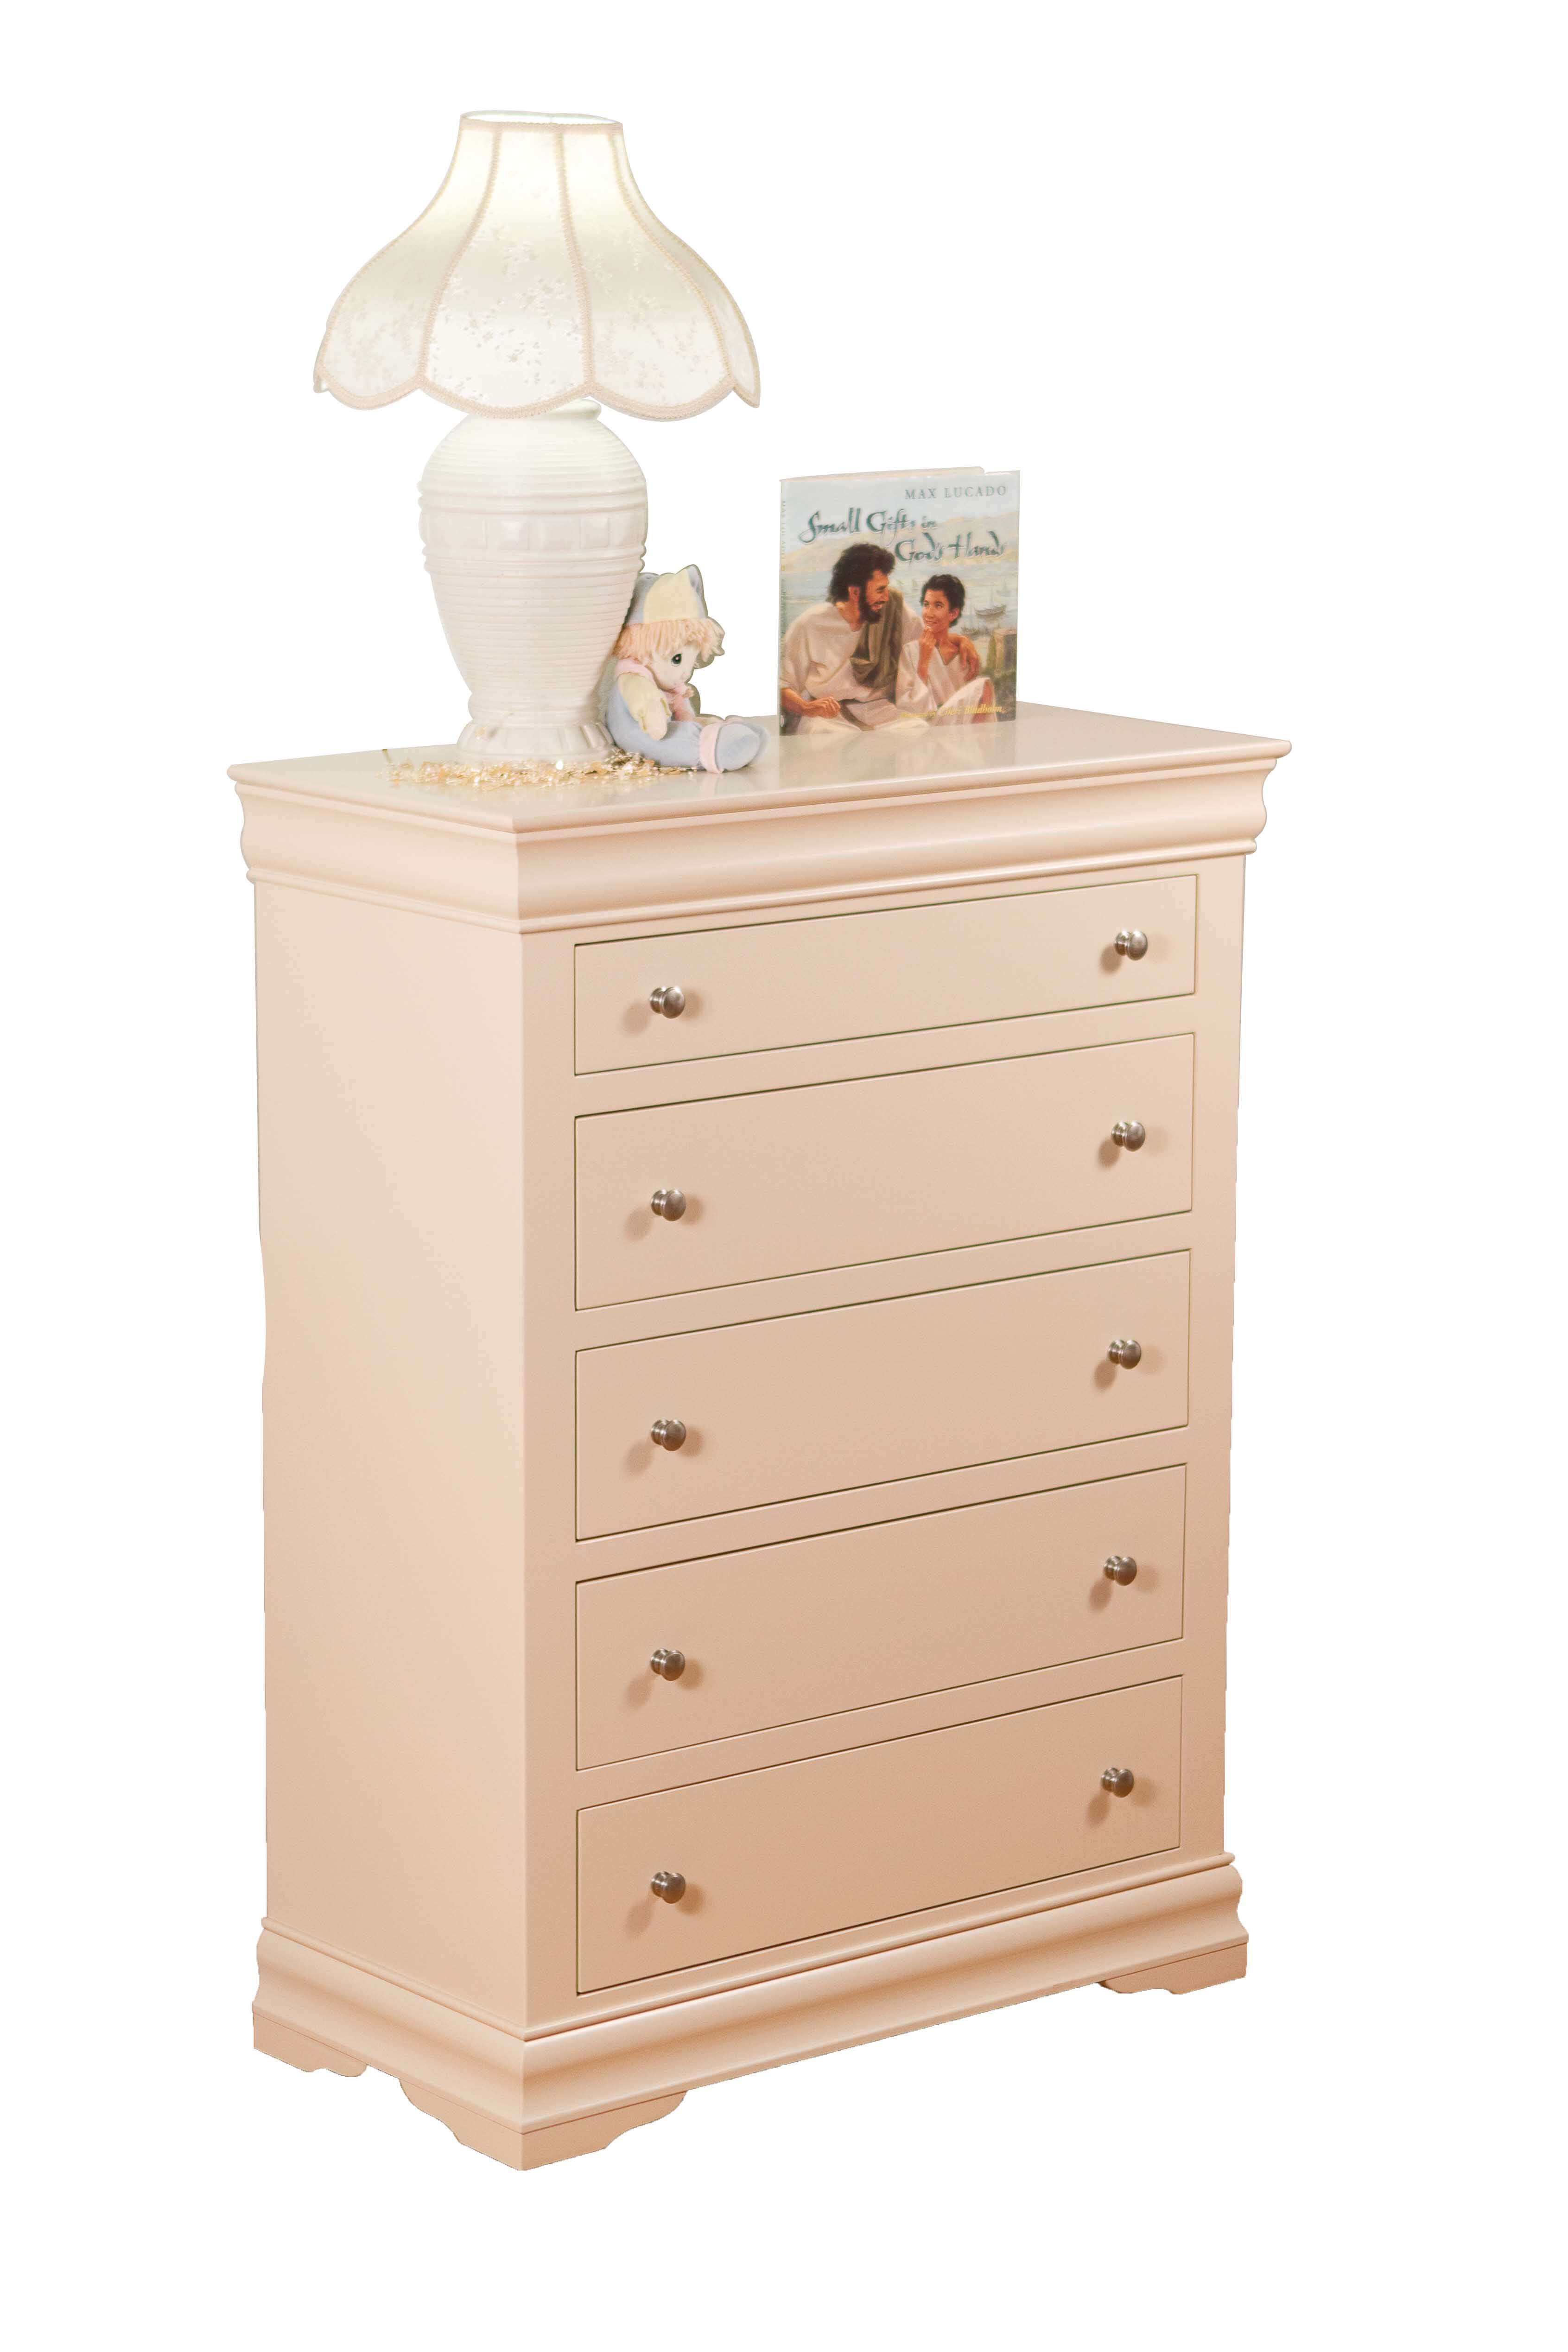 French Country Chest of Drawers